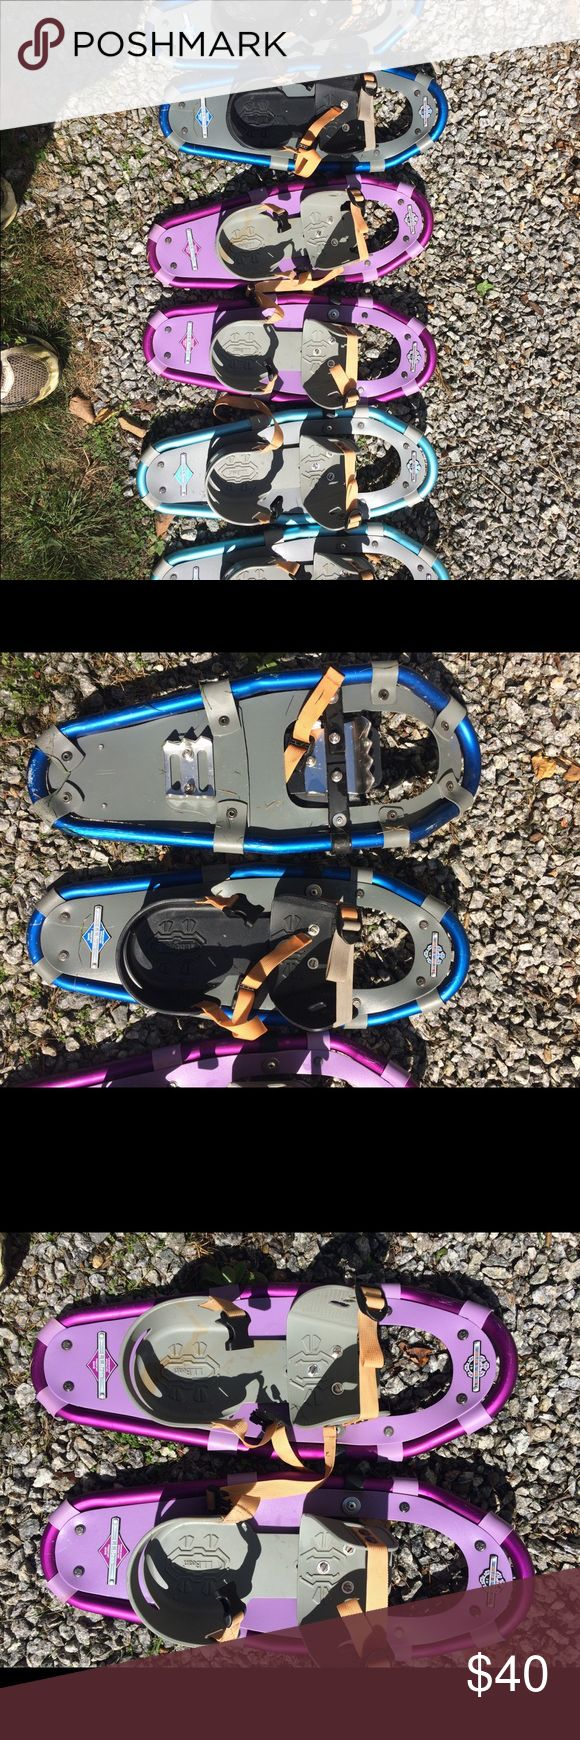 L.L. Bean Snow Shoes Barely used L.L. Bean Winter Walker 19 snow shoes. Can fit a 50-110 lb person with a range of shoe sizes. Available in pink, light blue, and dark blue. $40 for each pair L.L. Bean Other